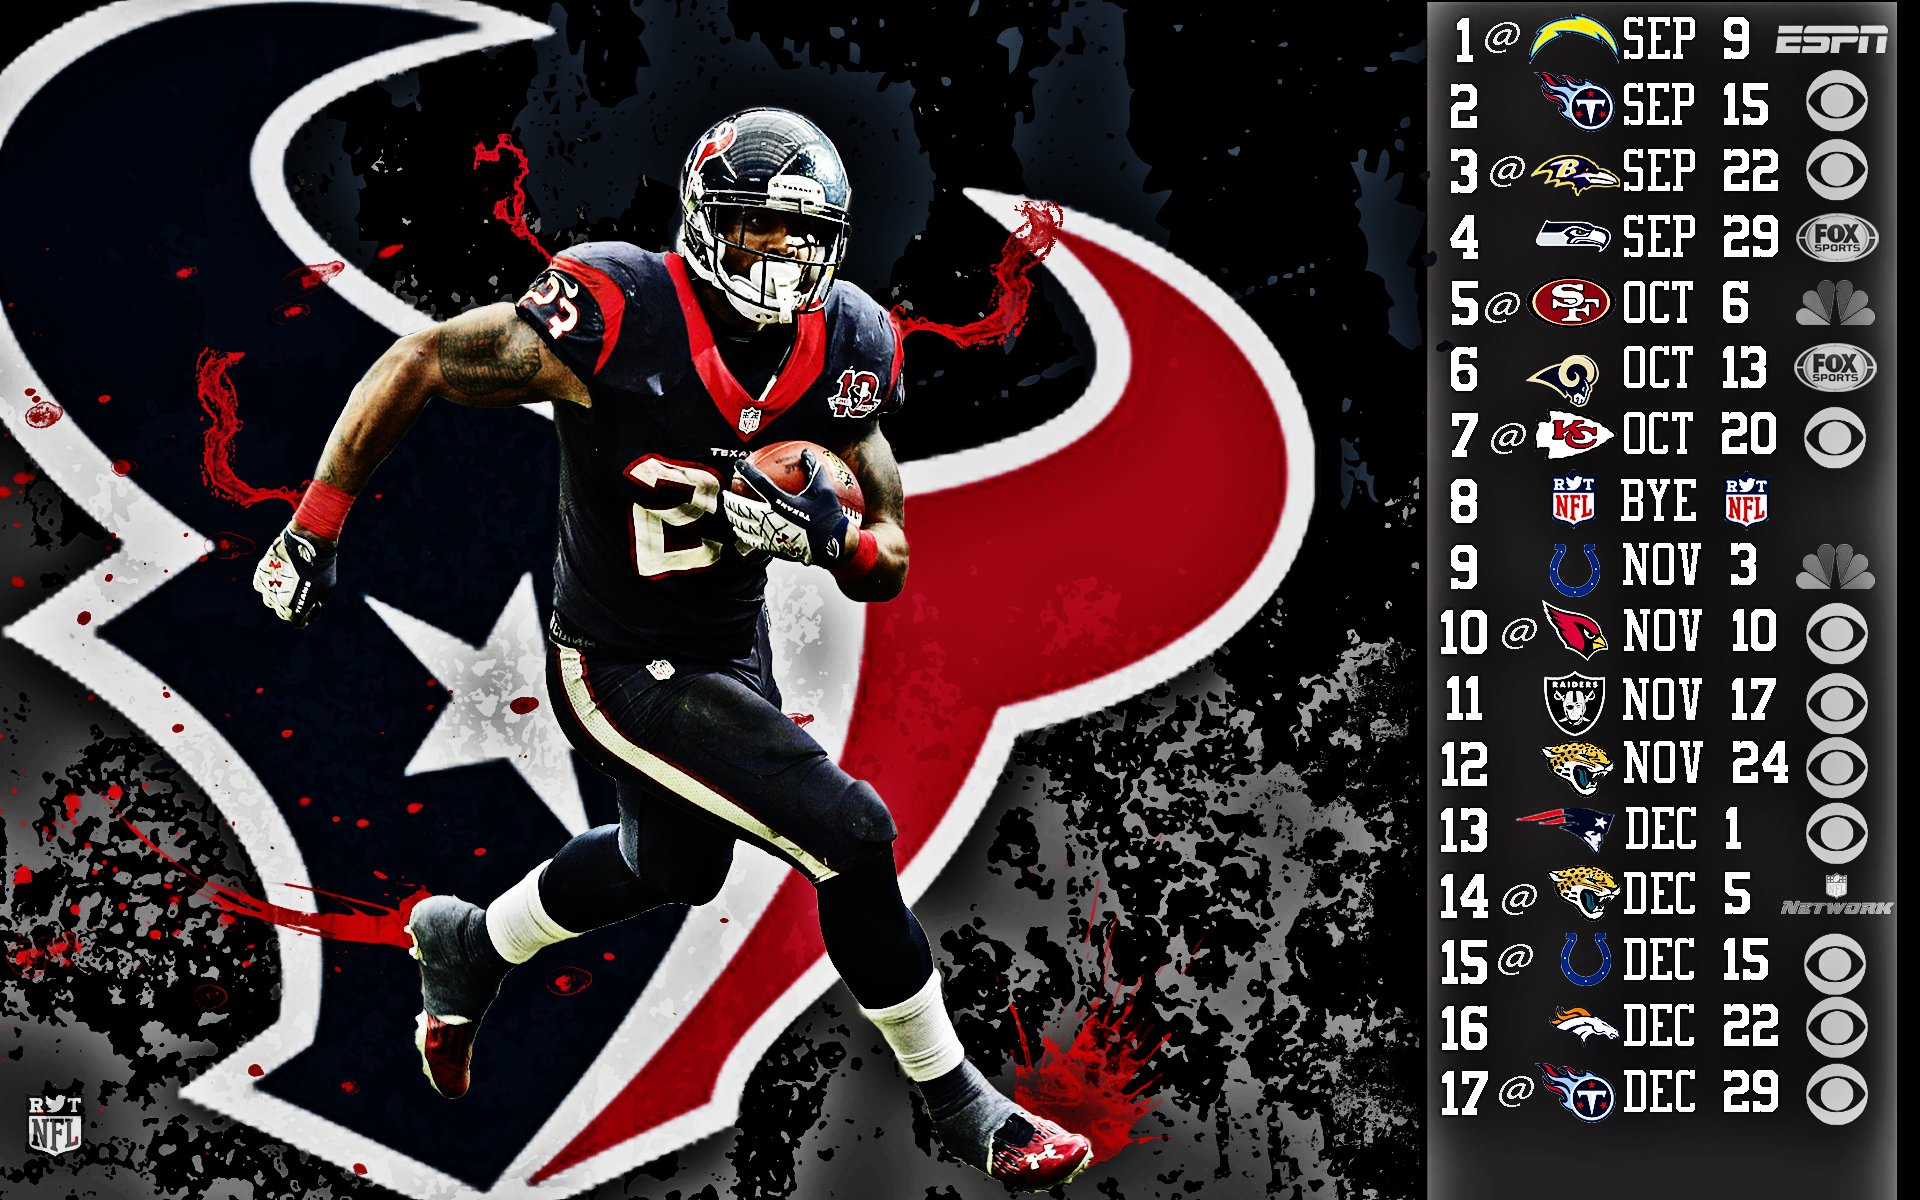 2013 Houston Texans football nfl wallpaper 1920x1200 130411 1920x1200